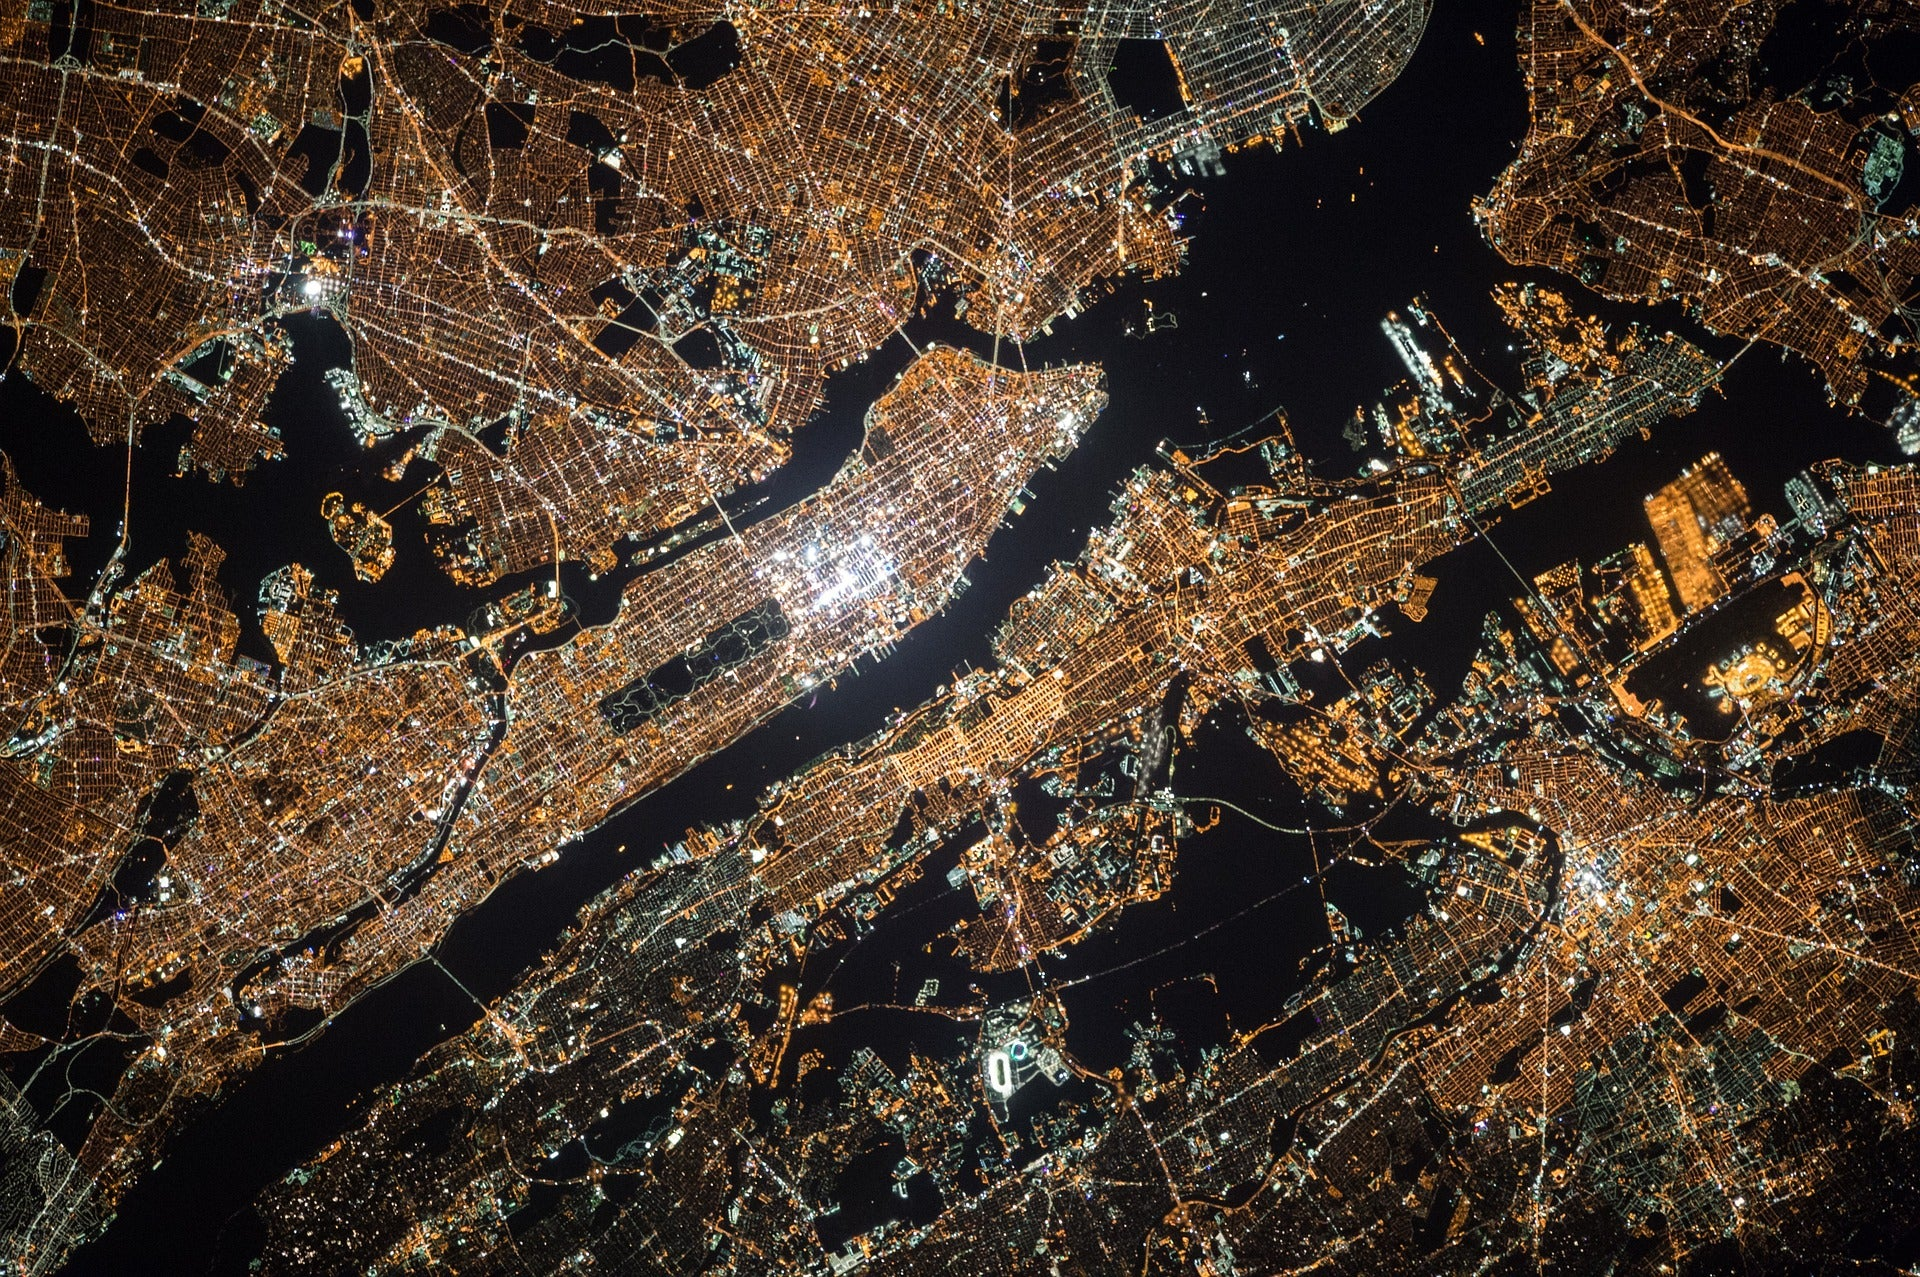 An aerial view of New York City at night.